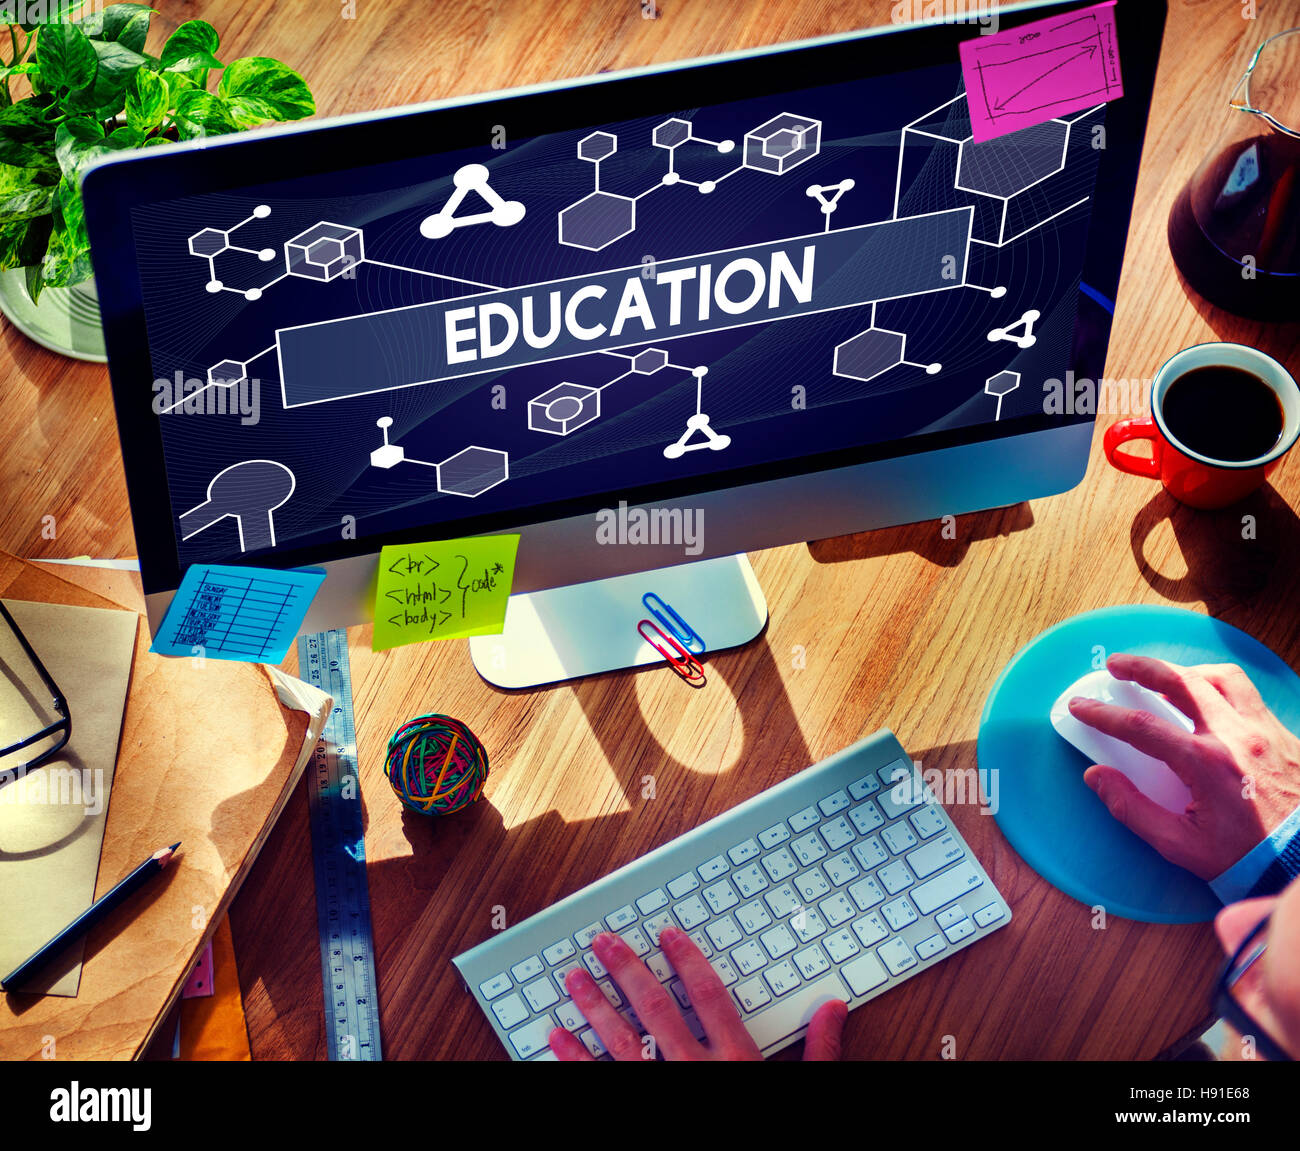 Education Particles Geometry Shapes Graphics Concept - Stock Image